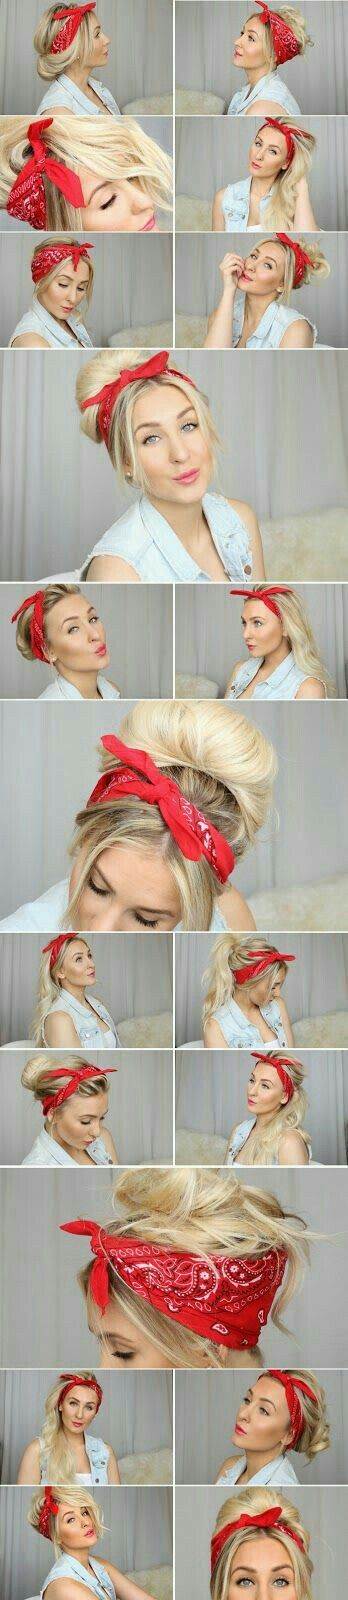 different ways to wear a bandana in your hair ❤